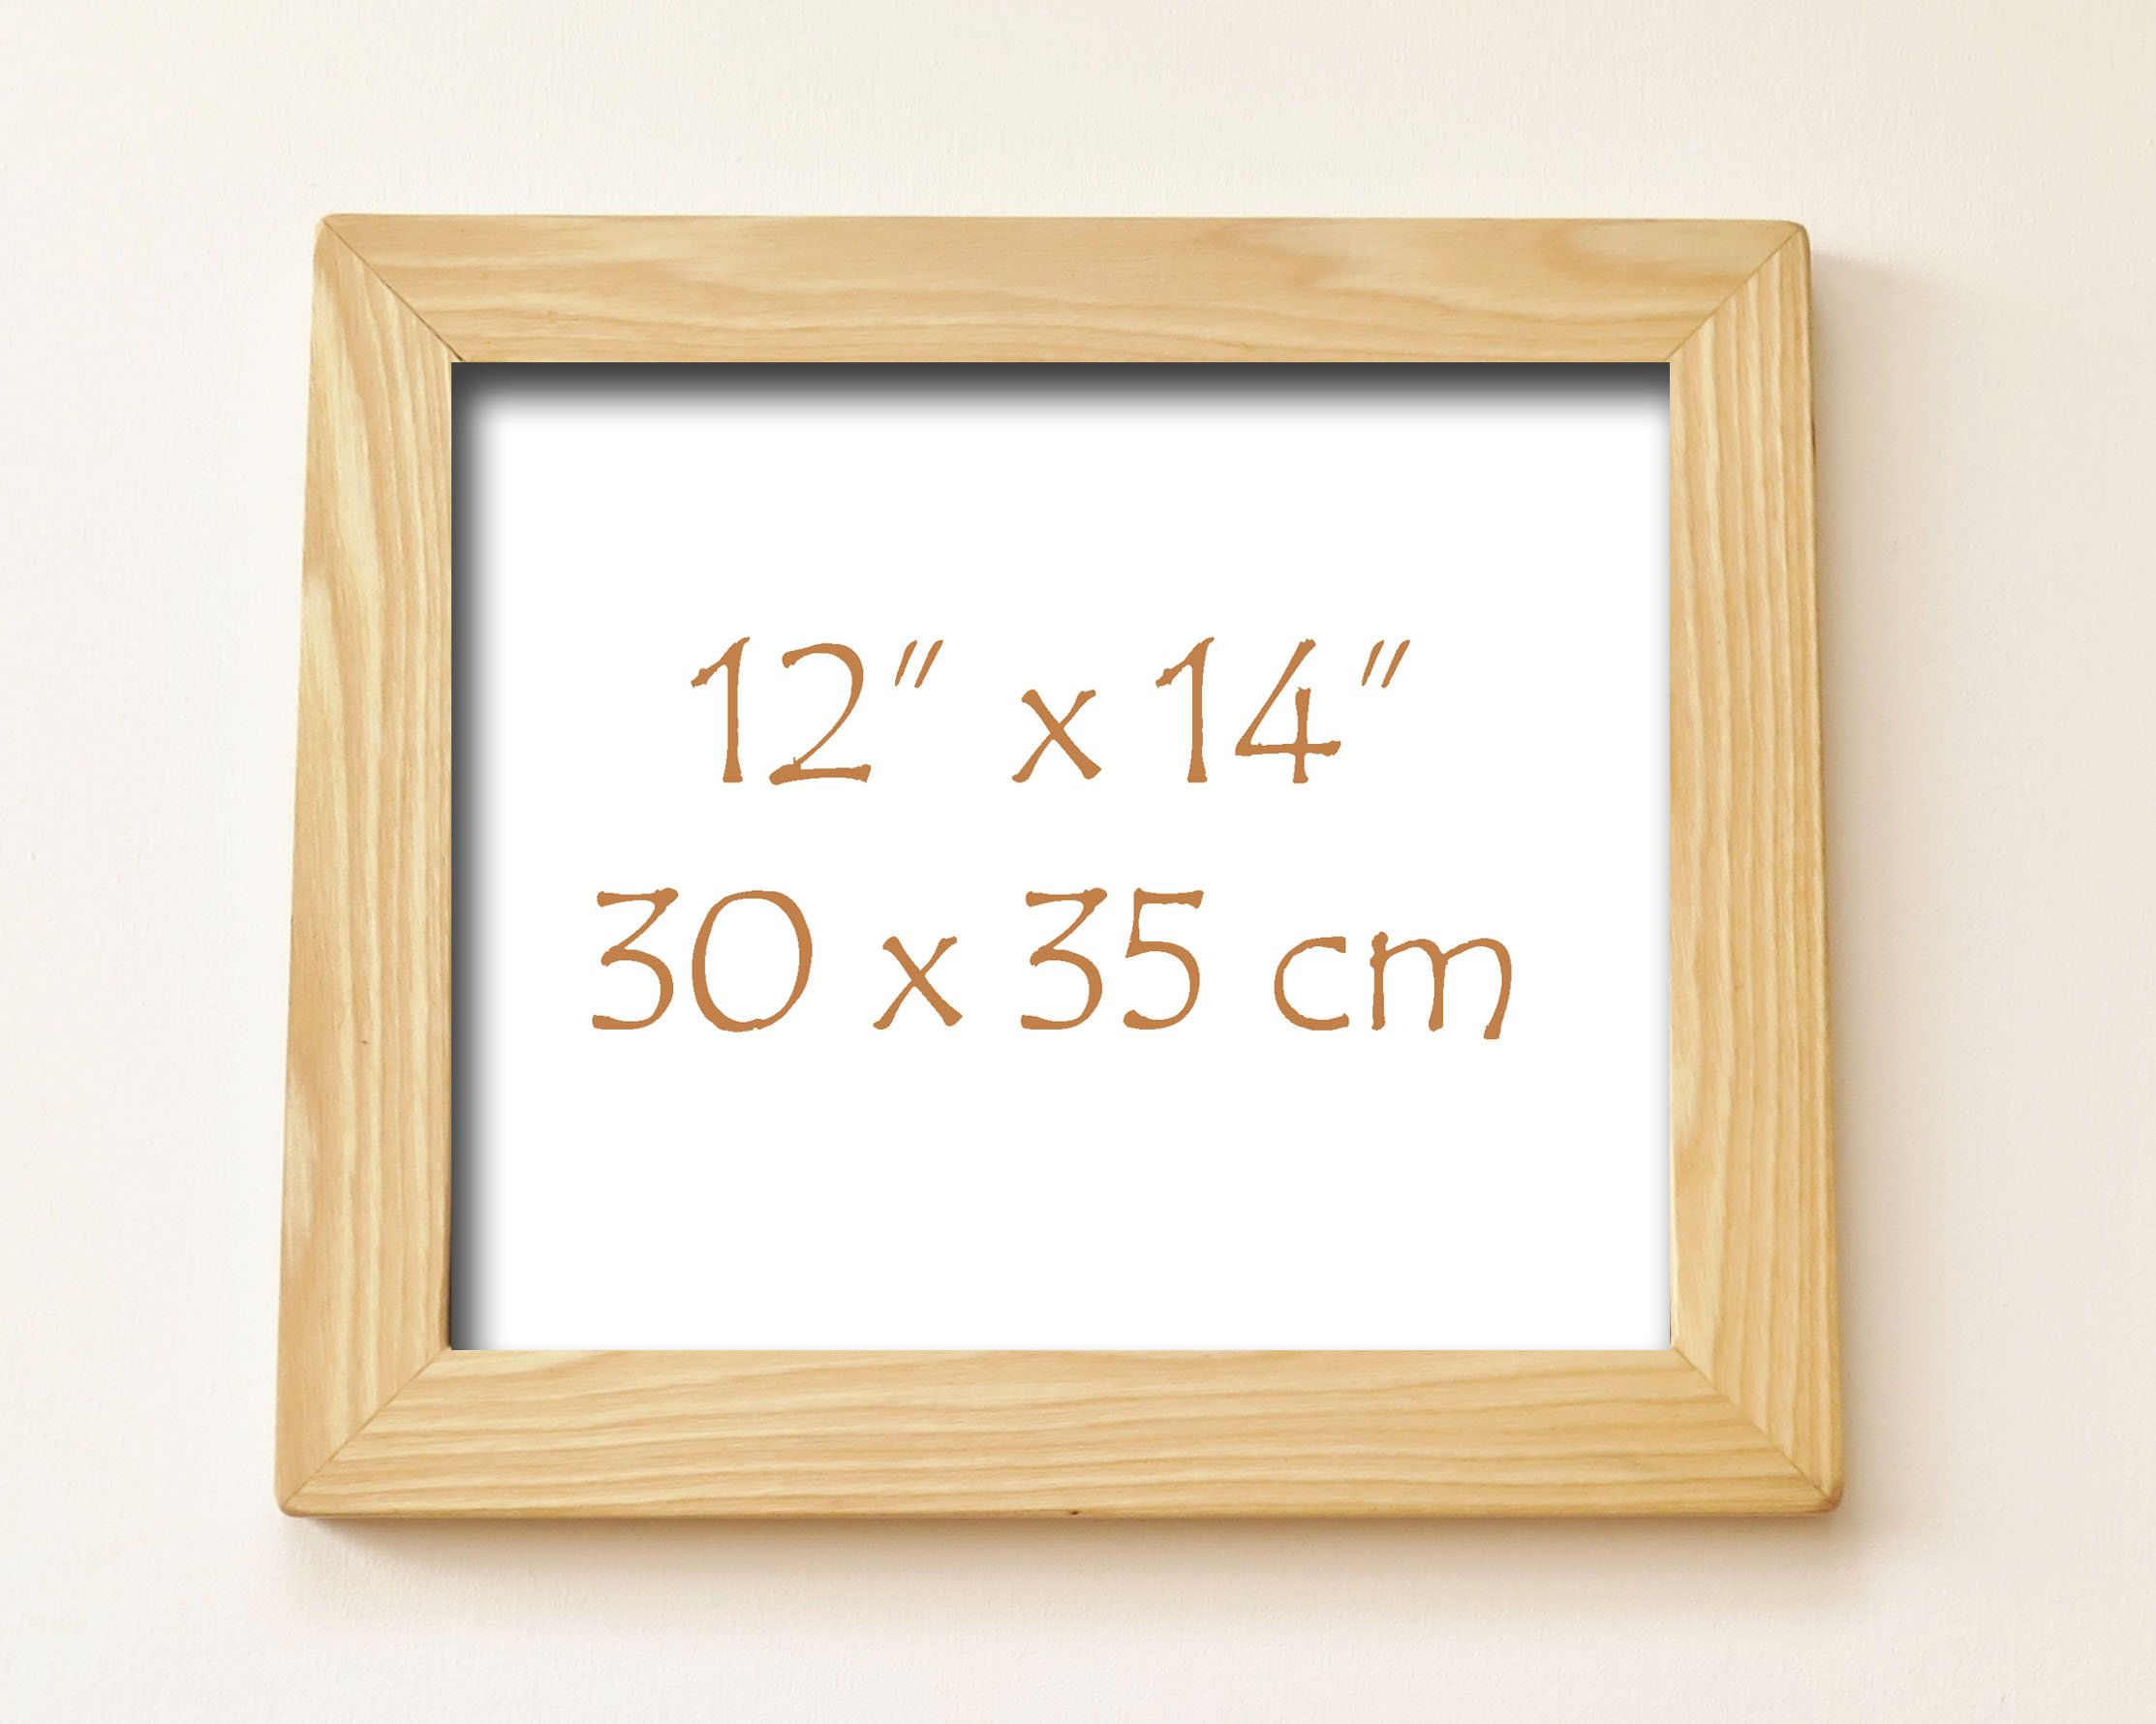 White Ash Wood Frame Handmade Picture Frame Made With Solid White Ash Wood 12 X 14 Wood Frame Handmade Picture Frames Wood Frame Ash Wood